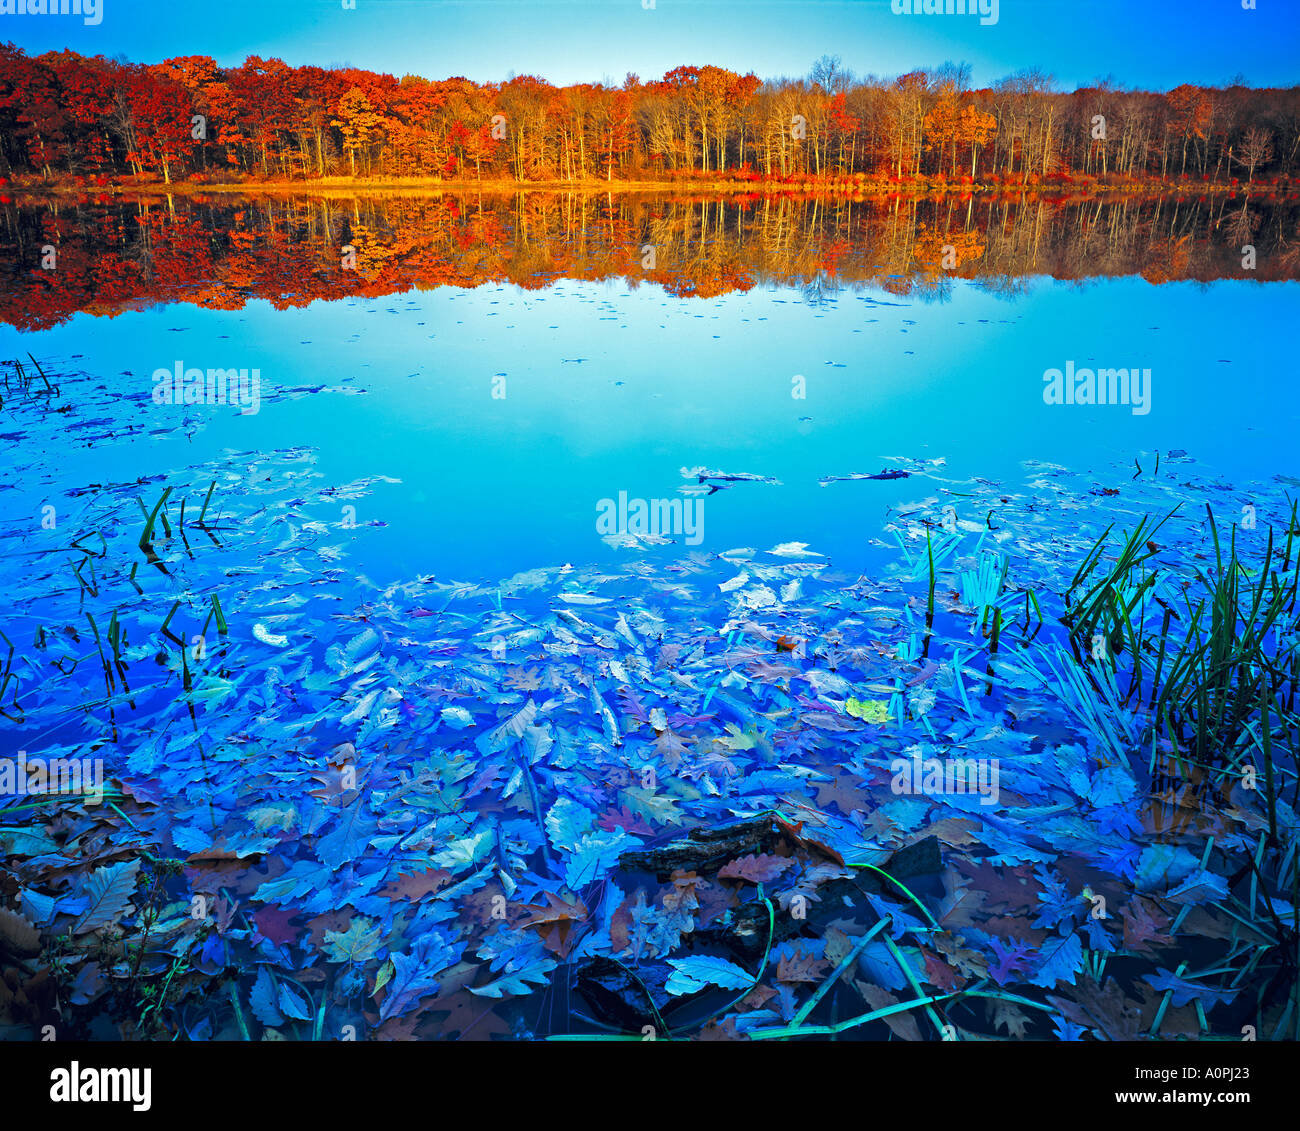 Autumn Color Reflections Stokes State Forest Appalachian Mountains New Jersey - Stock Image